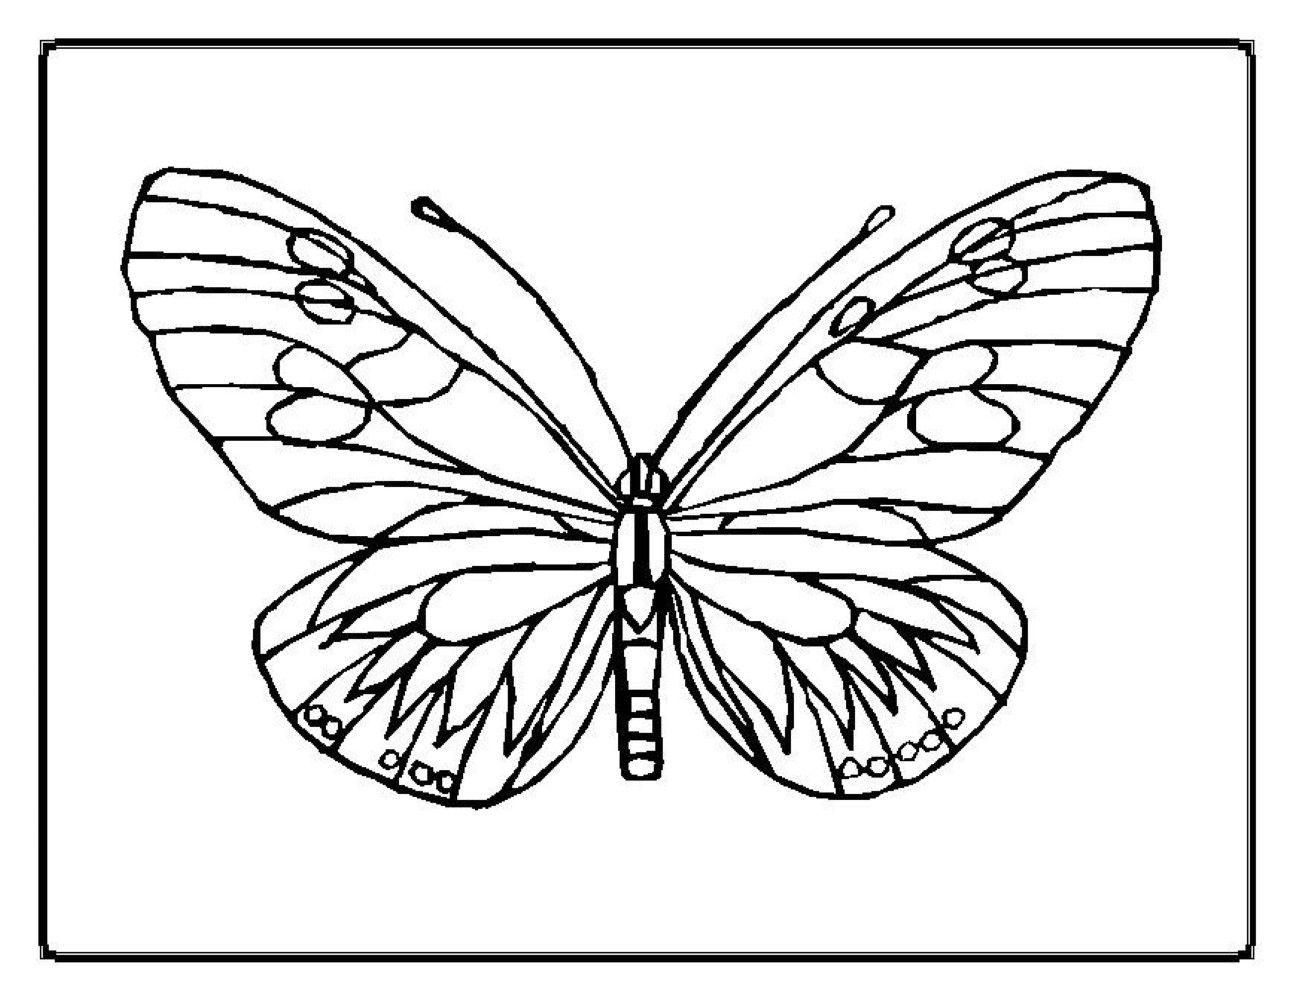 Bee and butterfly coloring pages - Butterfly Coloring Pages 07 Jpg 1295 1000